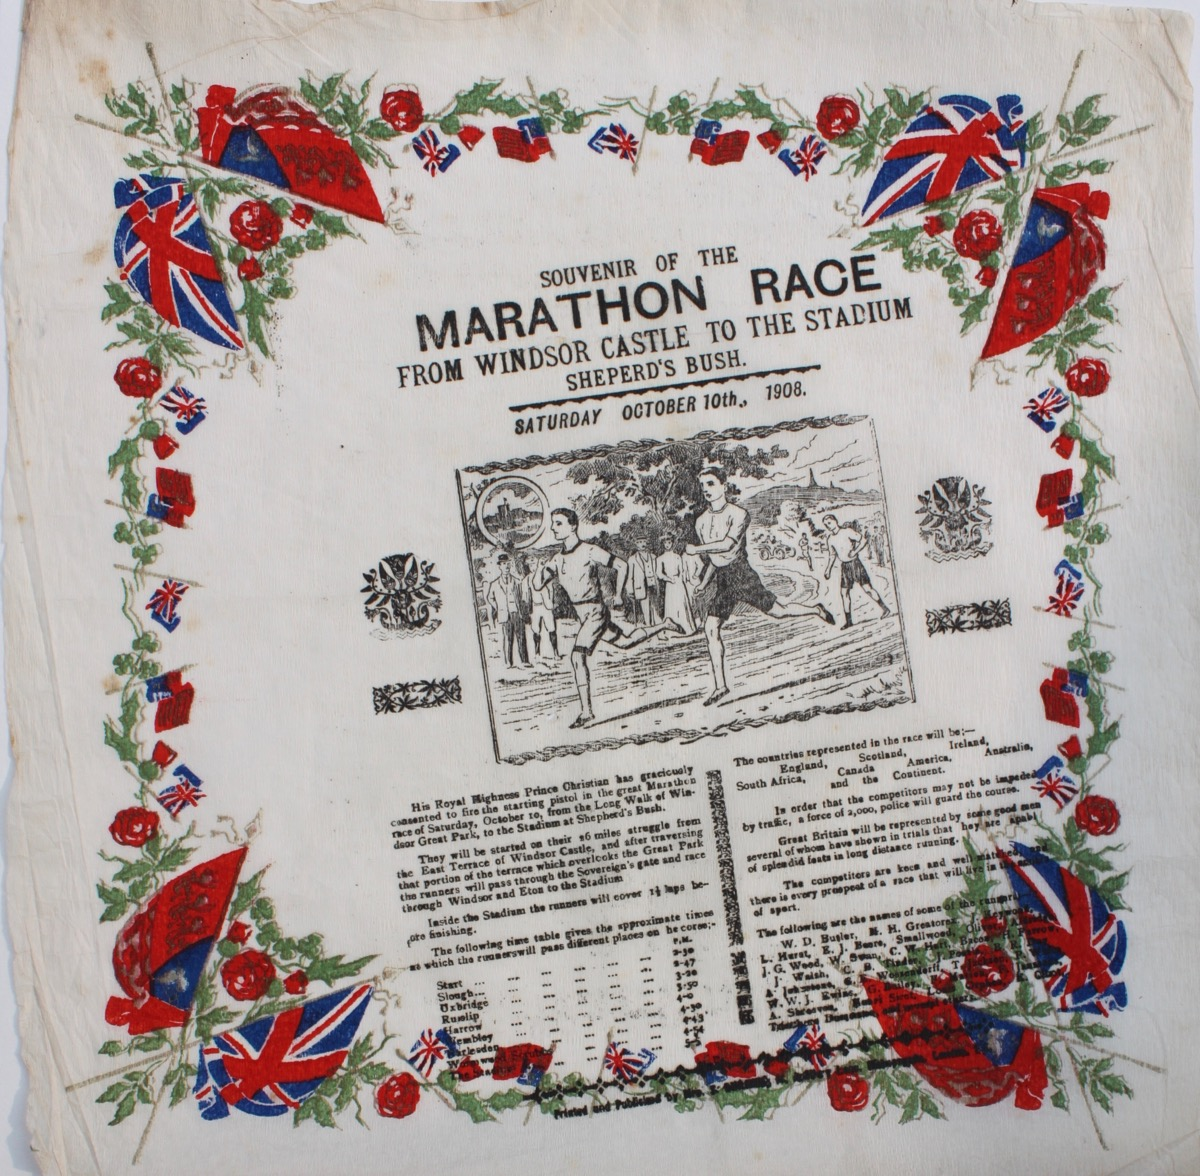 Image for Souvenir of the Marathon Race from Windsor Castle to the Stadium Sheperd's [sic] Bush. Saturday October 10th., 1908.